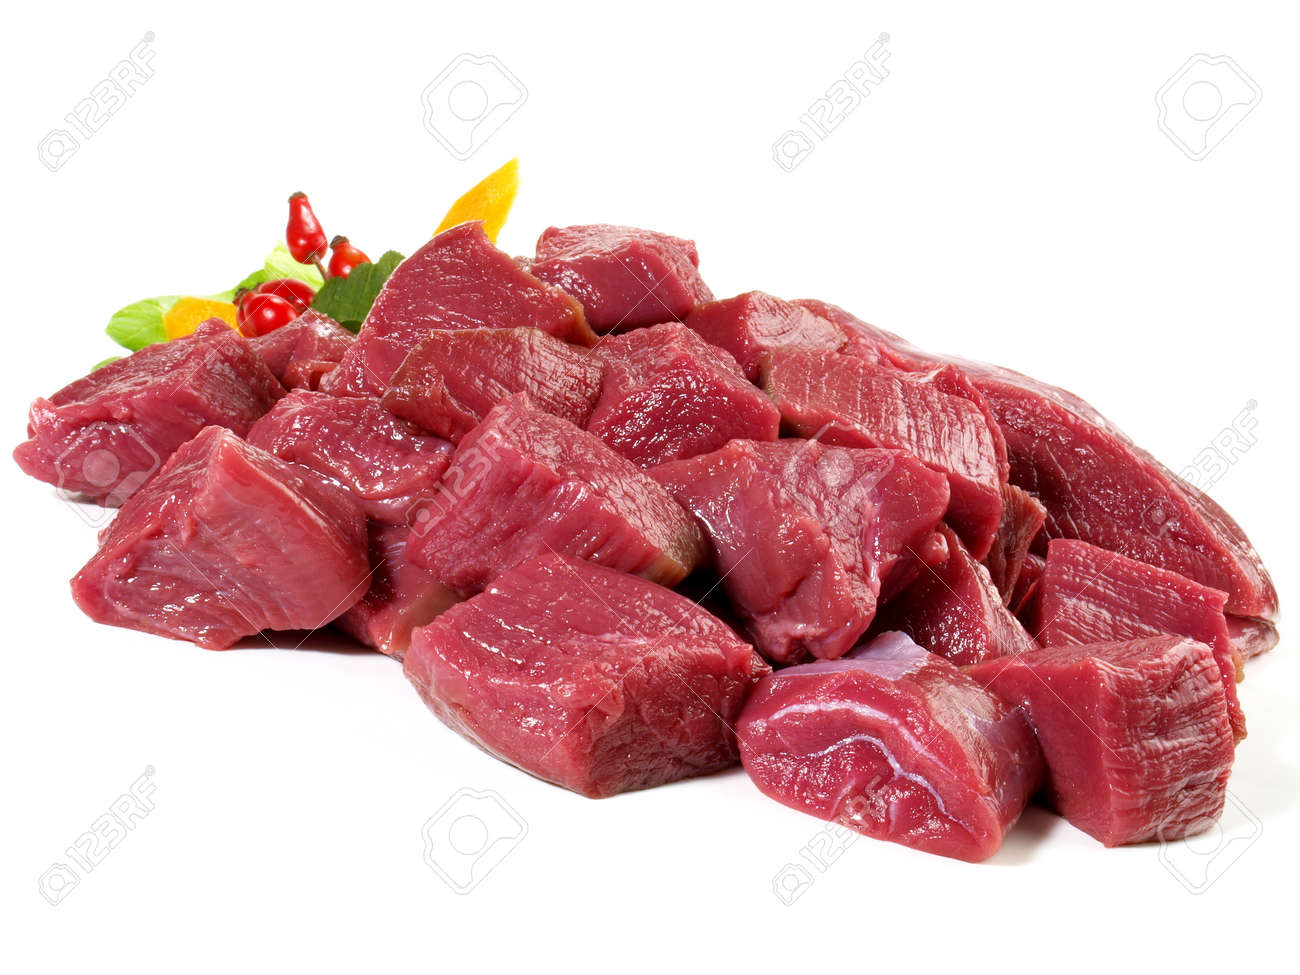 Raw Deer Ragout - Wild Game Meat Isolated on White Background - 167866723